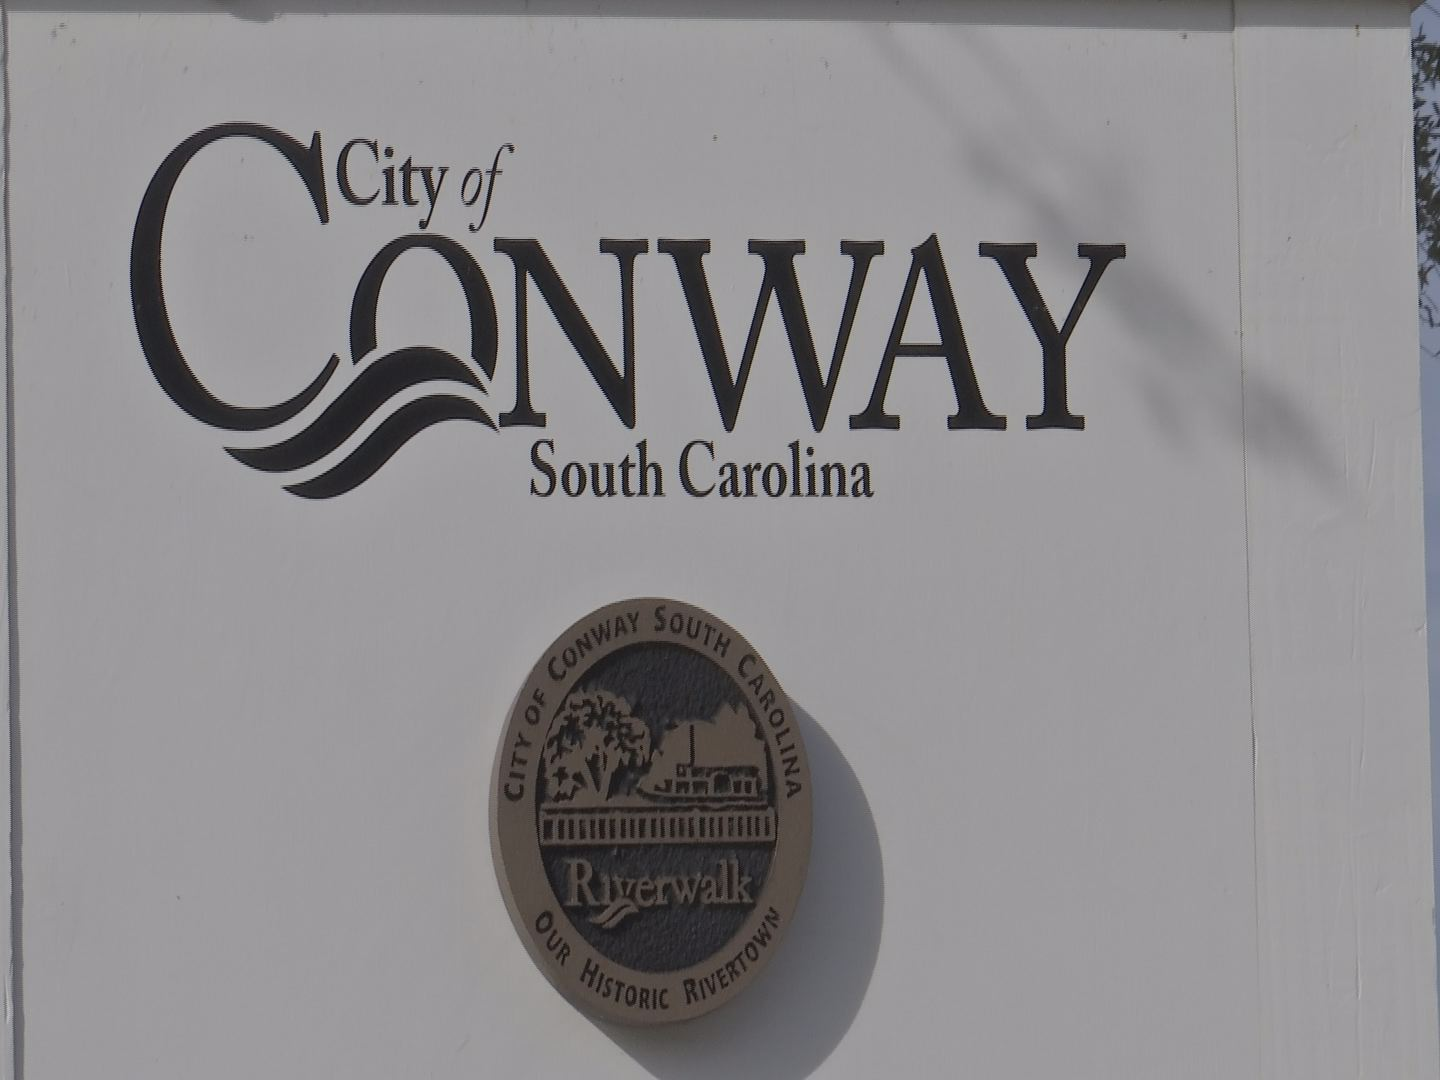 conway-seal00000000_328264